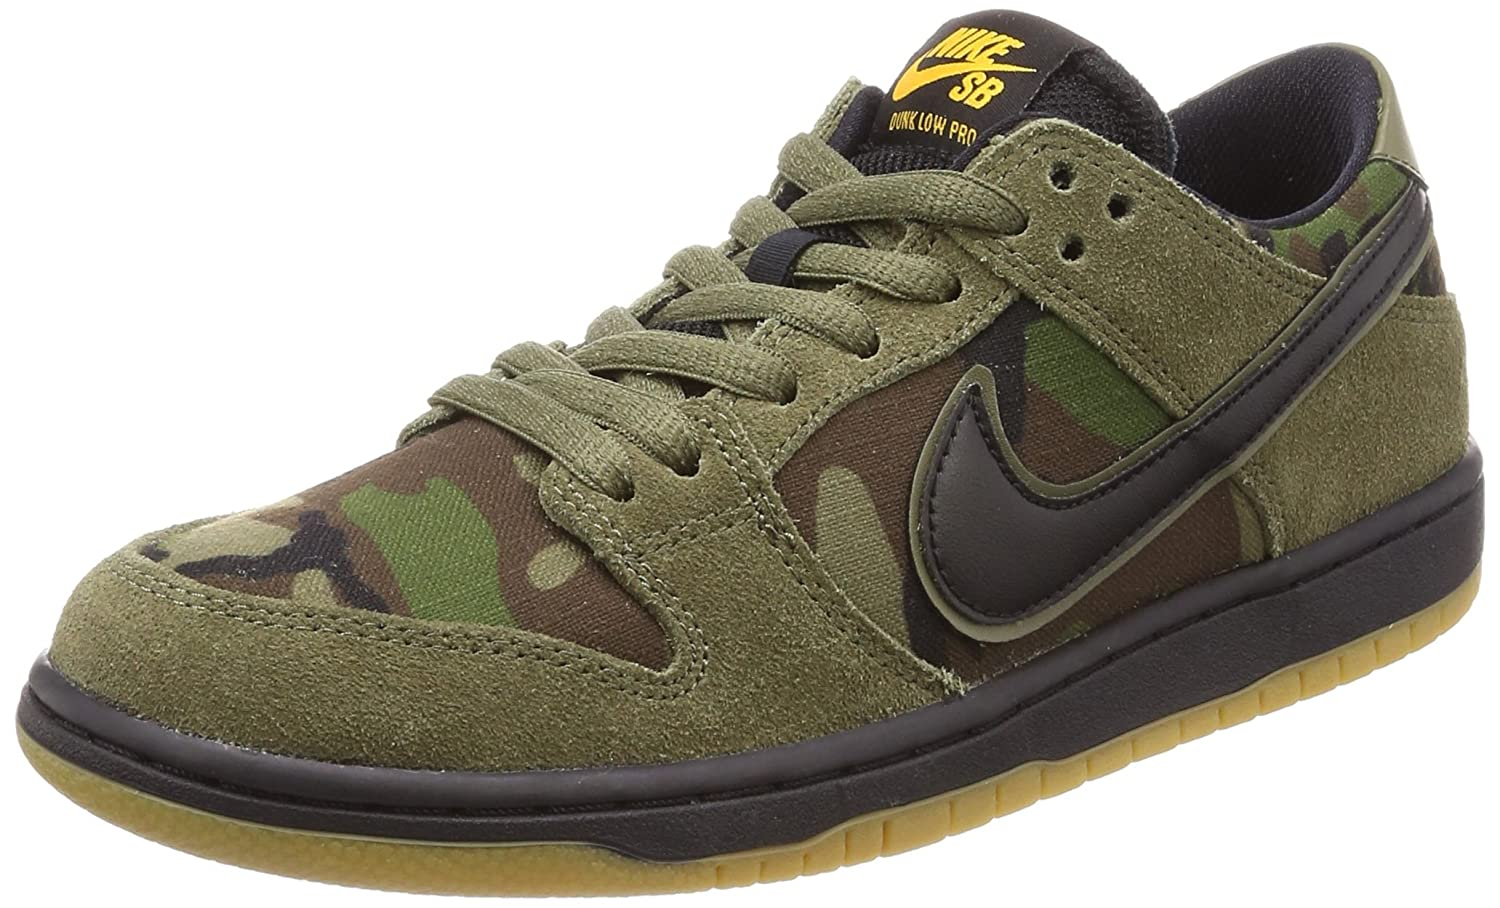 innovative design 4c959 0a686 Amazon.com | Nike Men's SB Zoom Dunk Low Pro Skate Shoe ...